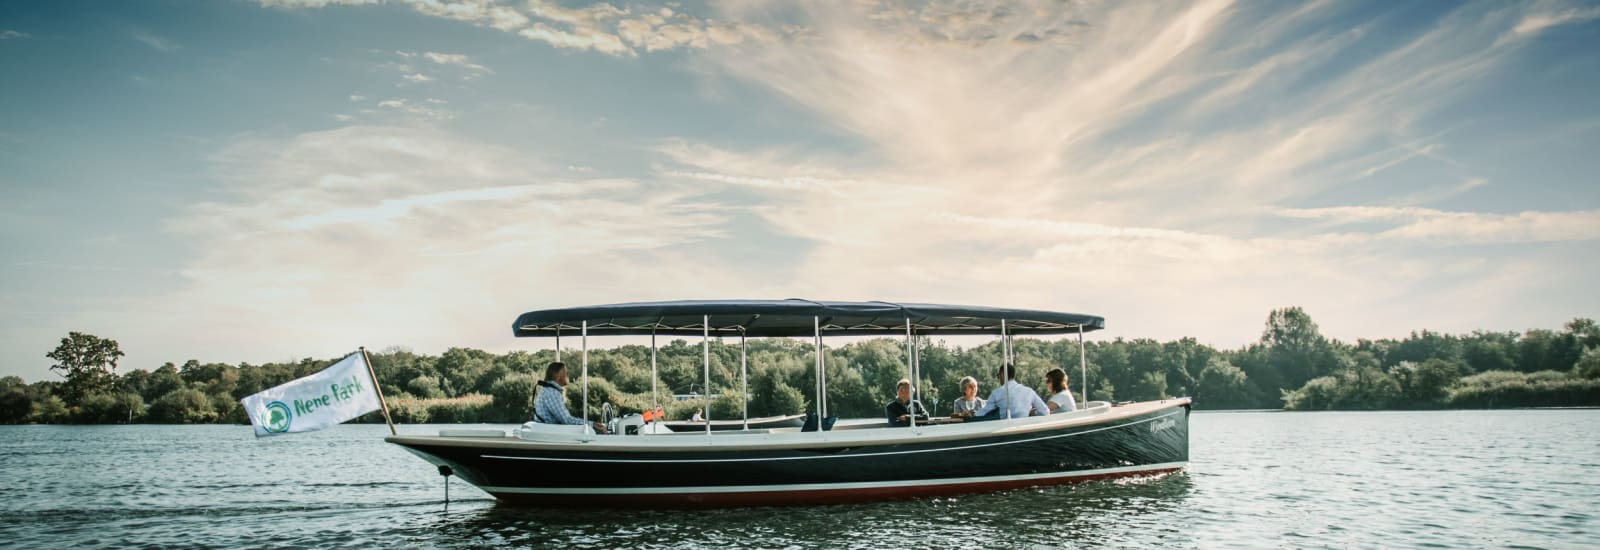 eco electric boat trips on the lake in nene park